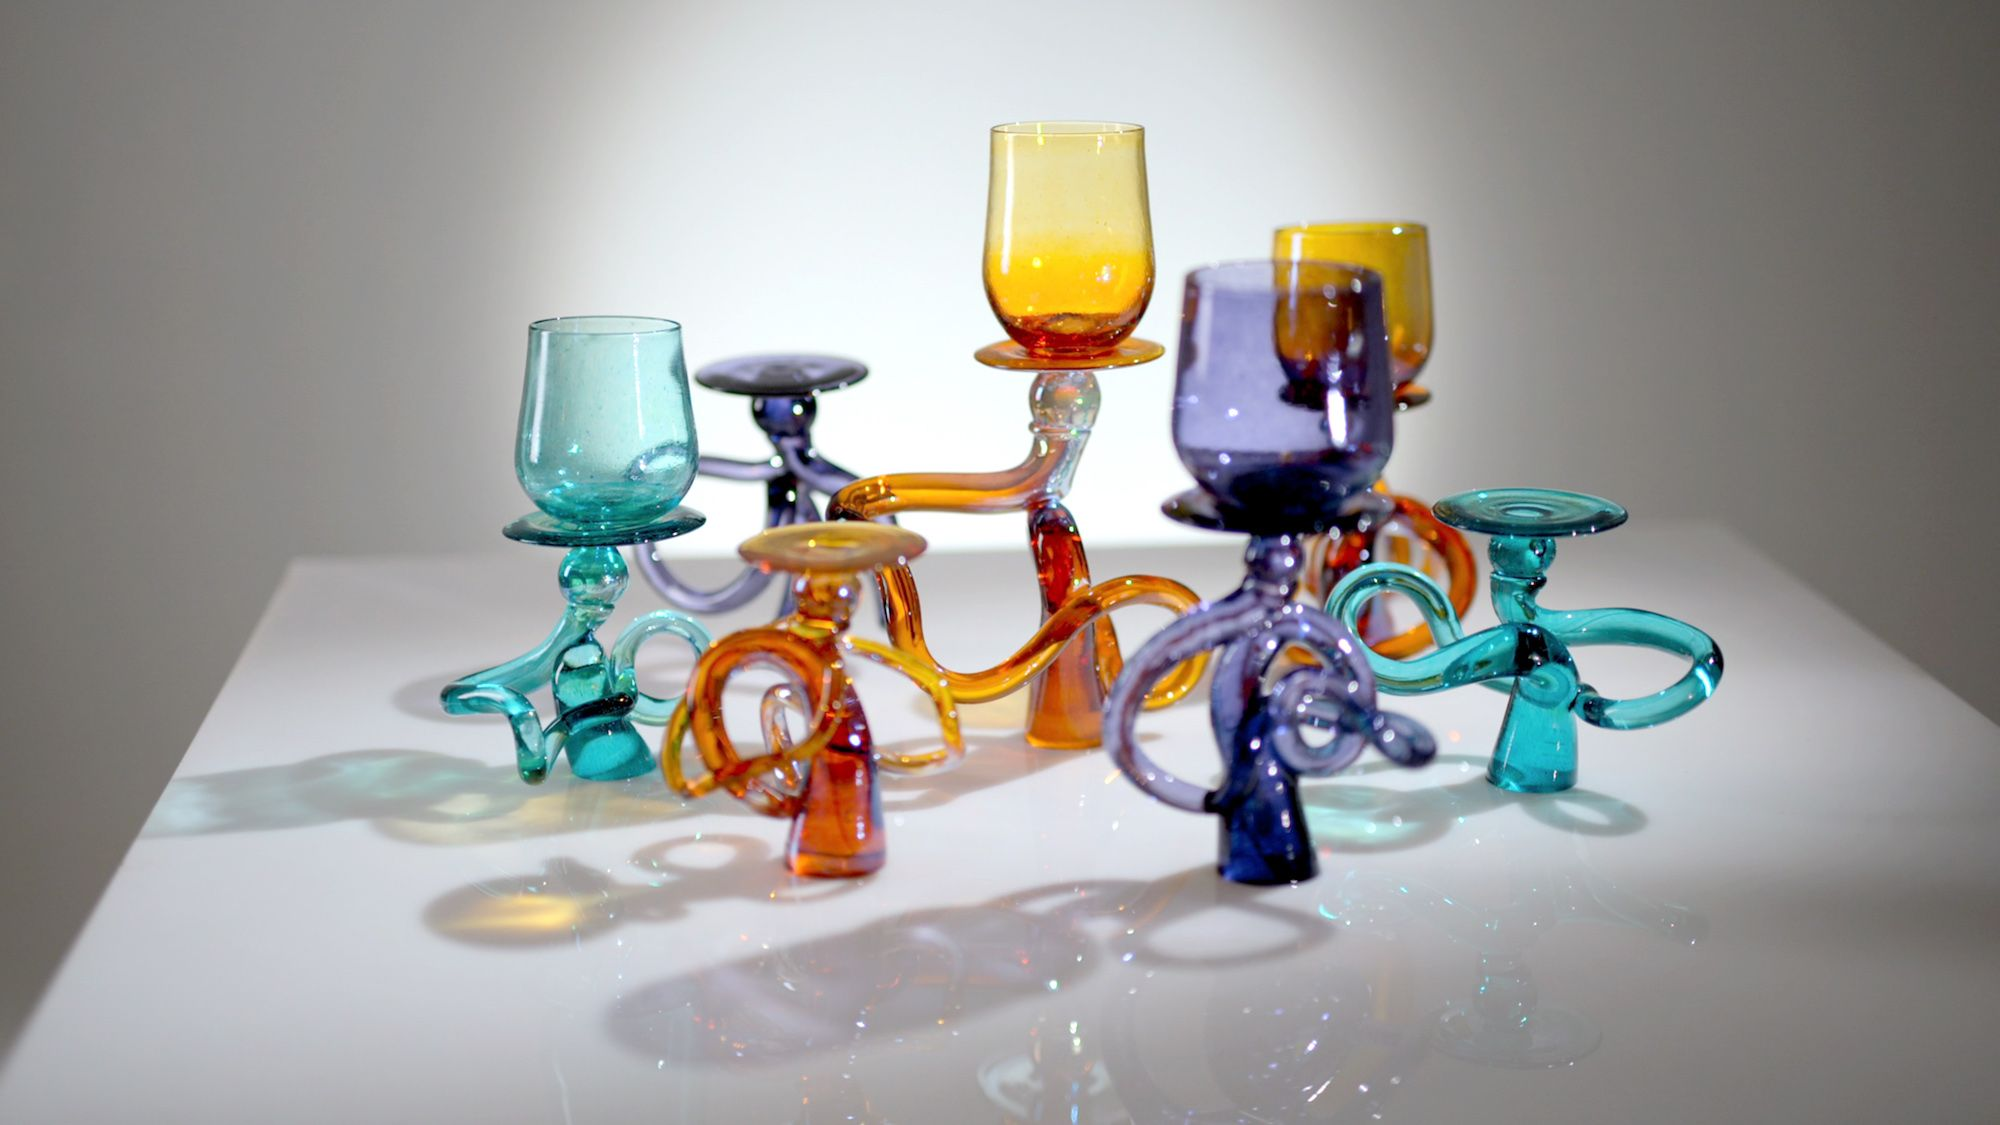 This Glassblowing Reality Competition Is the Design Show You Should Be Watching